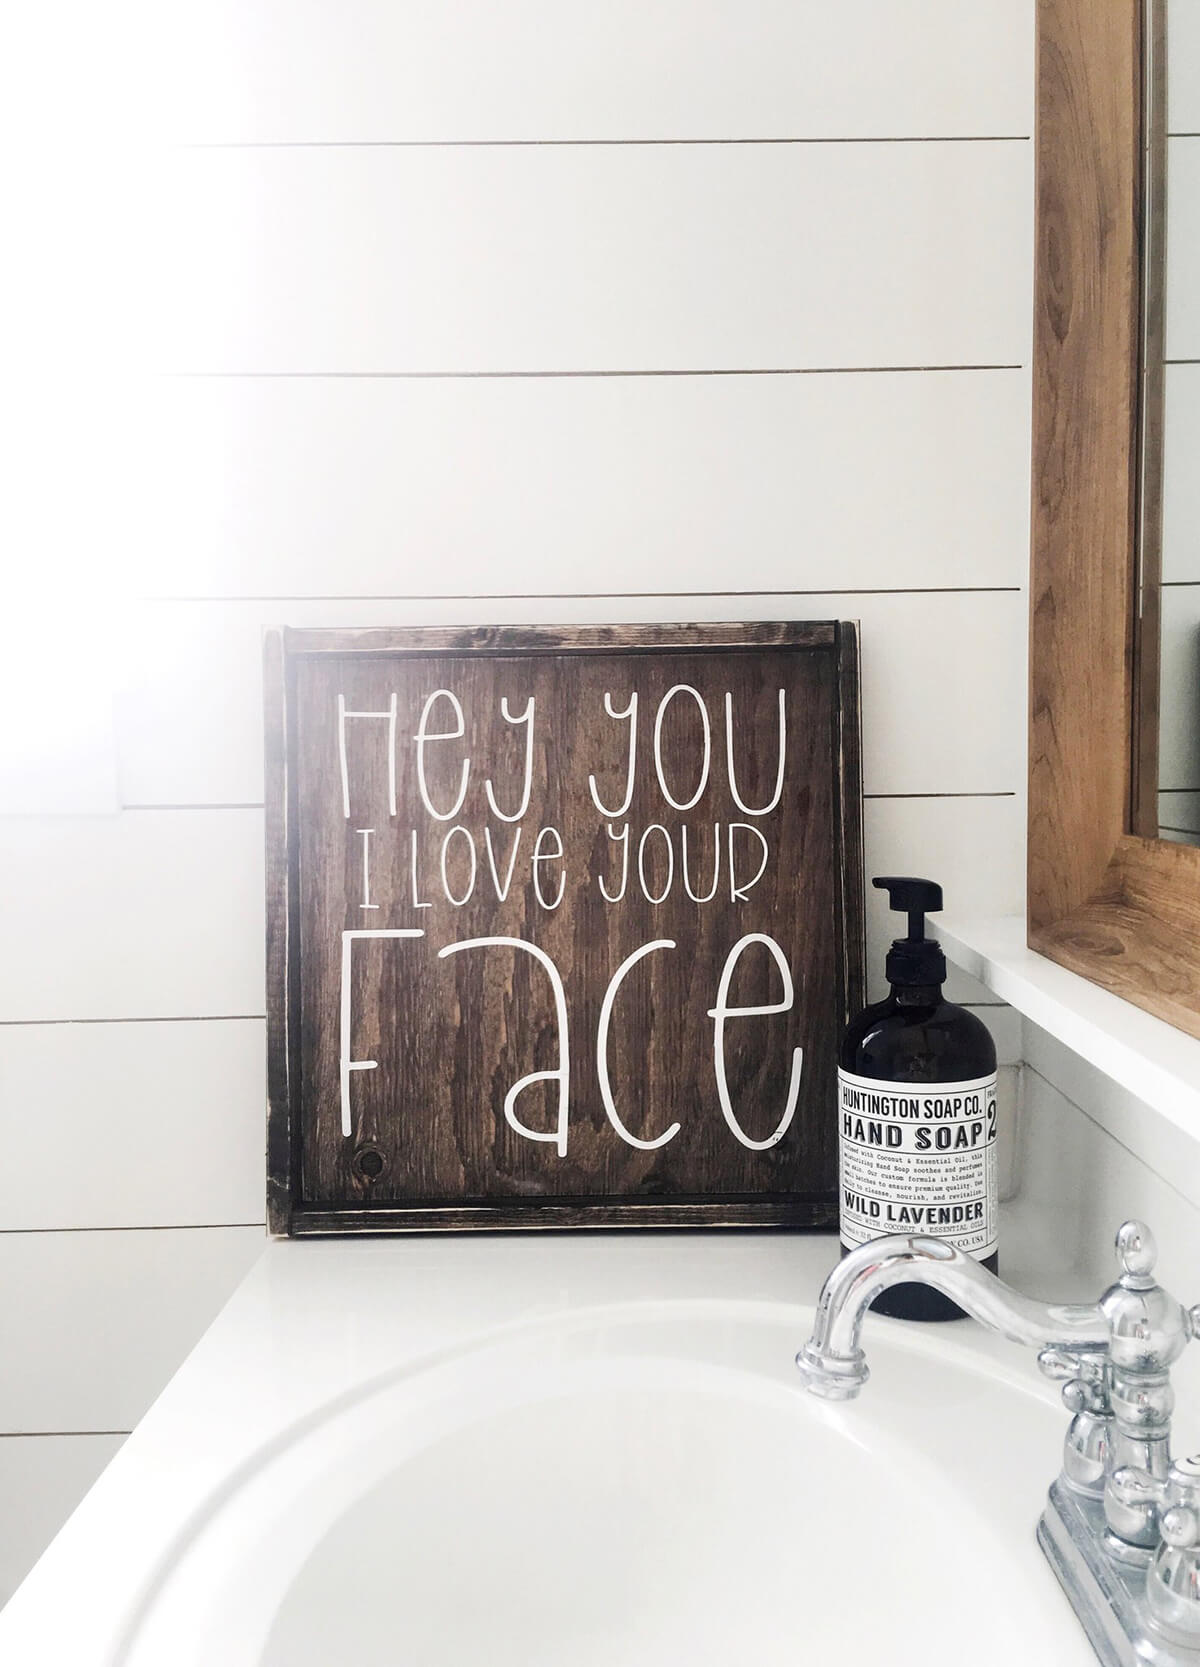 Add Some Inspiration to Your Bathroom Design